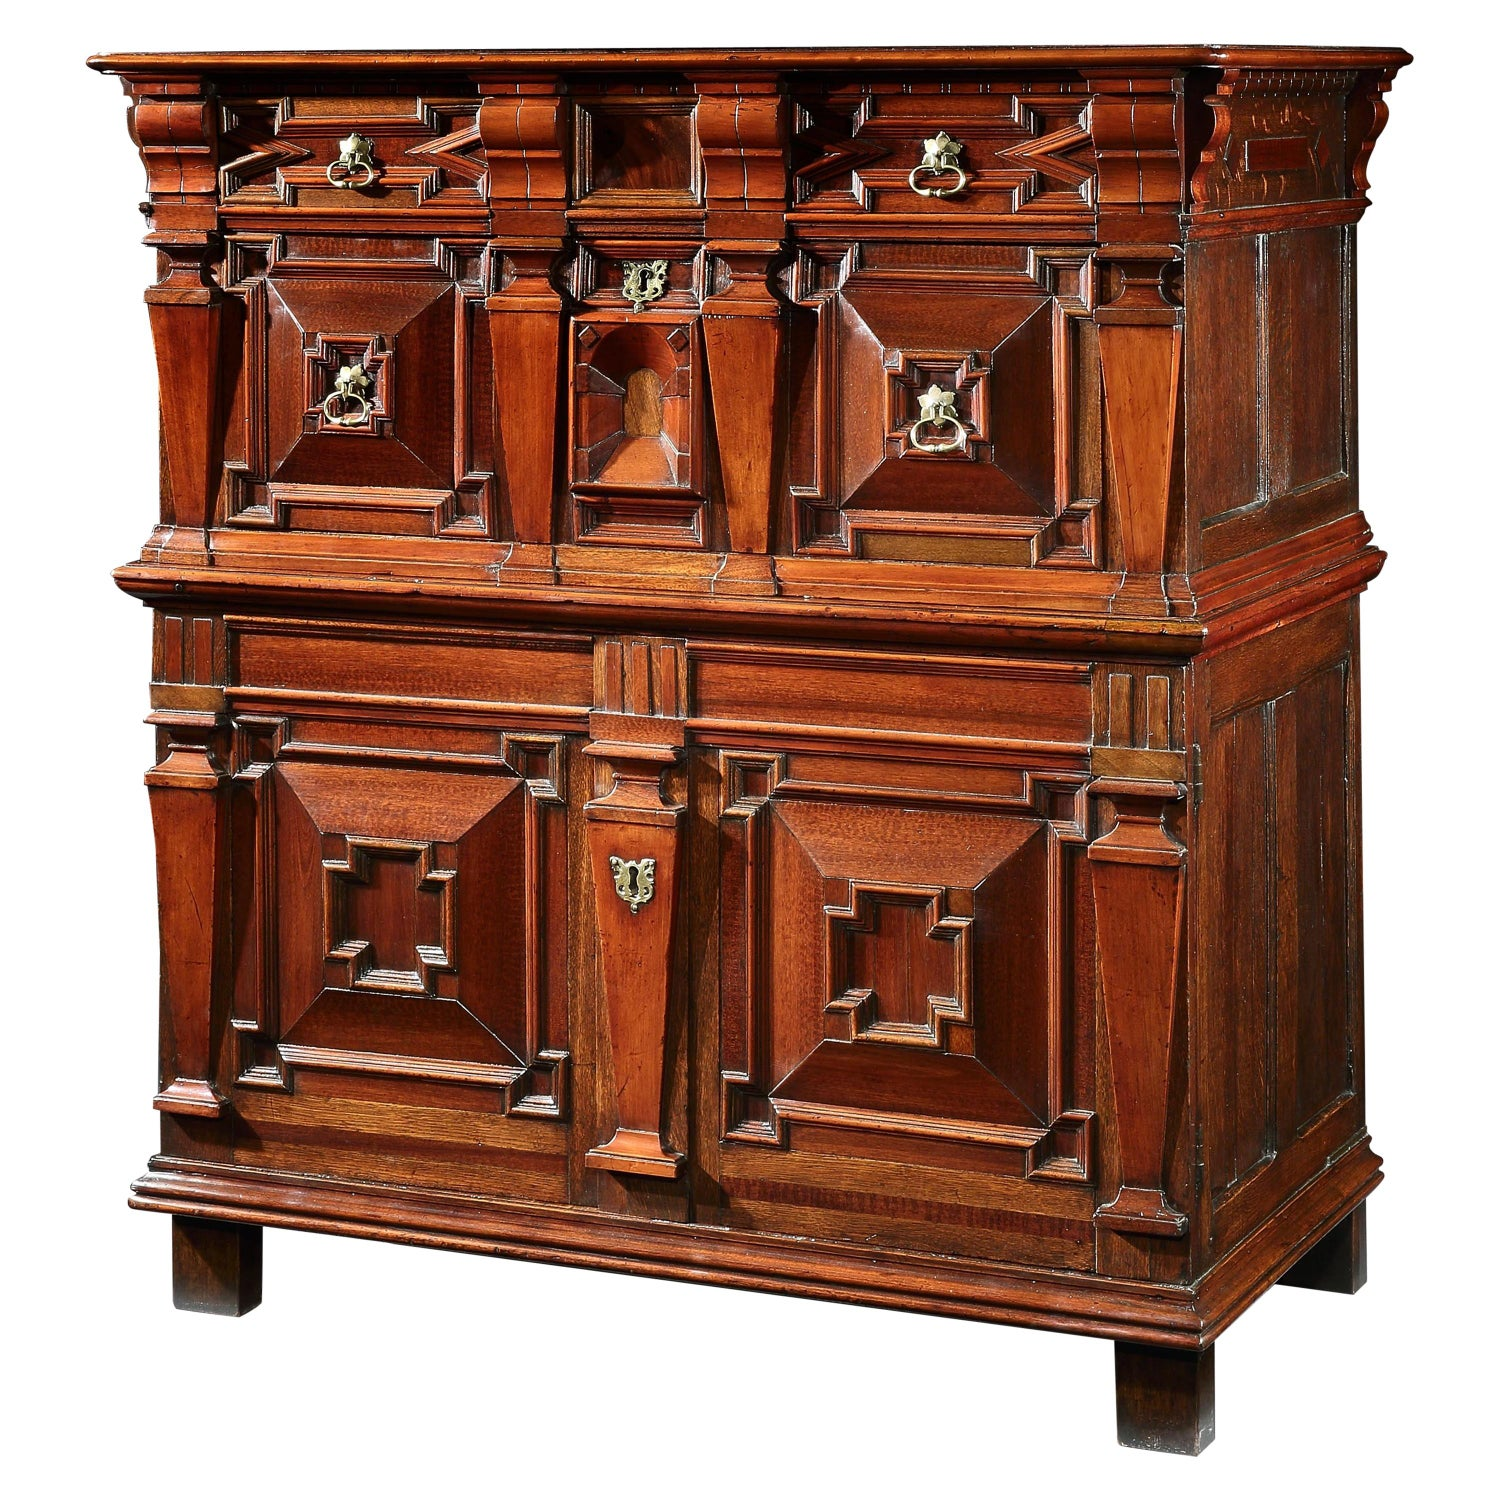 Chest of Drawers Chest Commode Architectural Facade Enclosed Renaissance Cedar